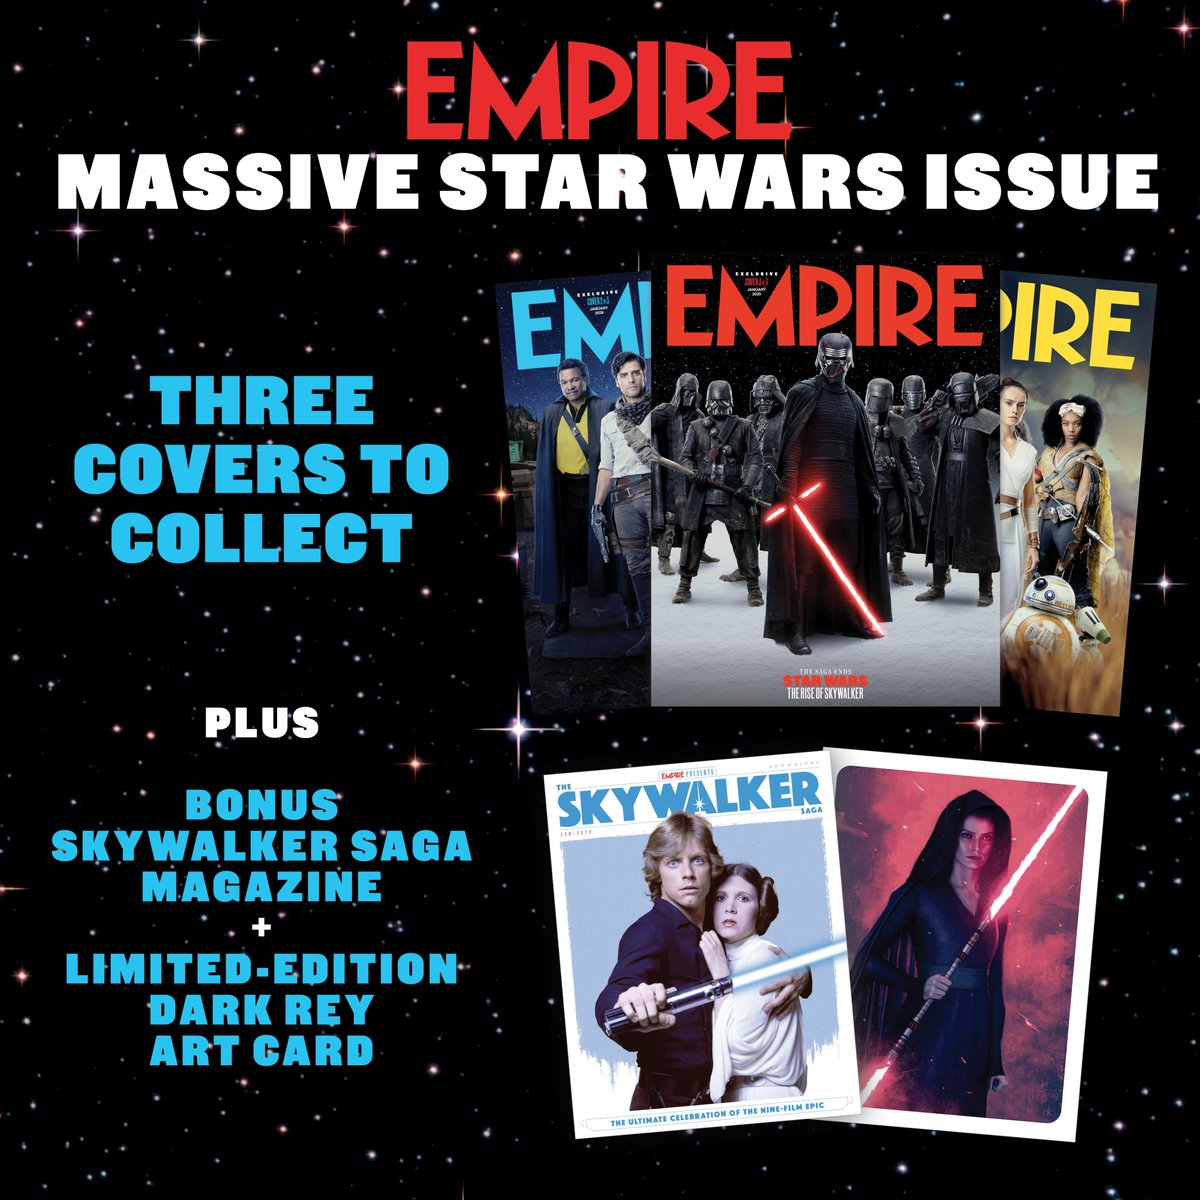 The saga ends. Empire's MASSIVE new #StarWars: #TheRiseOfSkywalker issue arrives Thurs 28 Nov – with exclusive images and interviews, bonus Skywalker Saga magazine celebrating the nine-film epic, and a limited-edition Dark Rey art card. READ MORE: empireonline.com/movies/news/em…